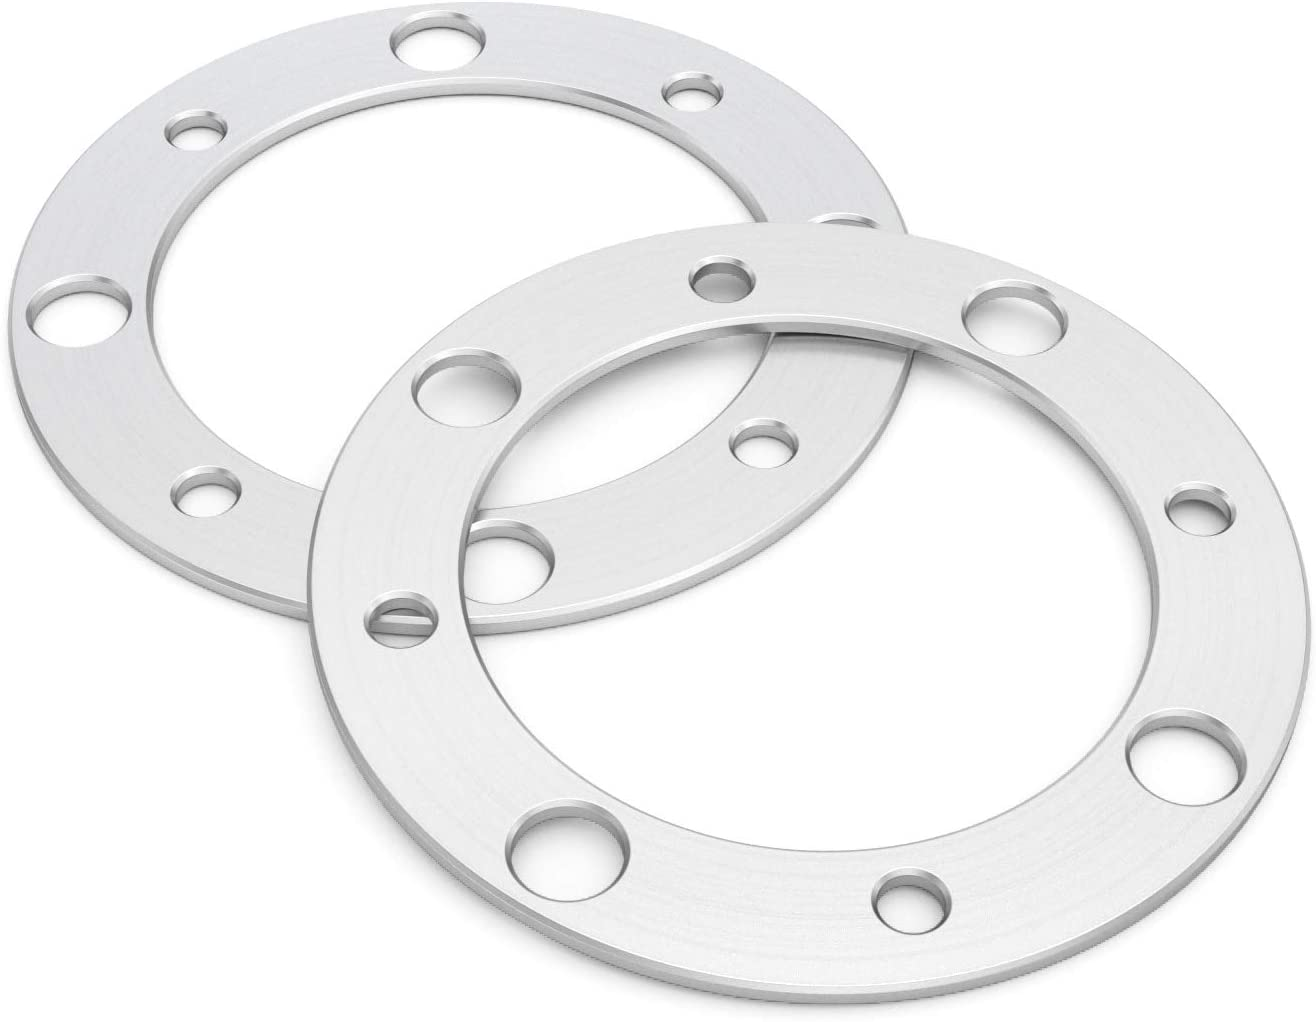 4 Polaris 4//156 Wheel Spacers Sportsman Ranger RZR 2 inch thick LIGHTWEIGHT